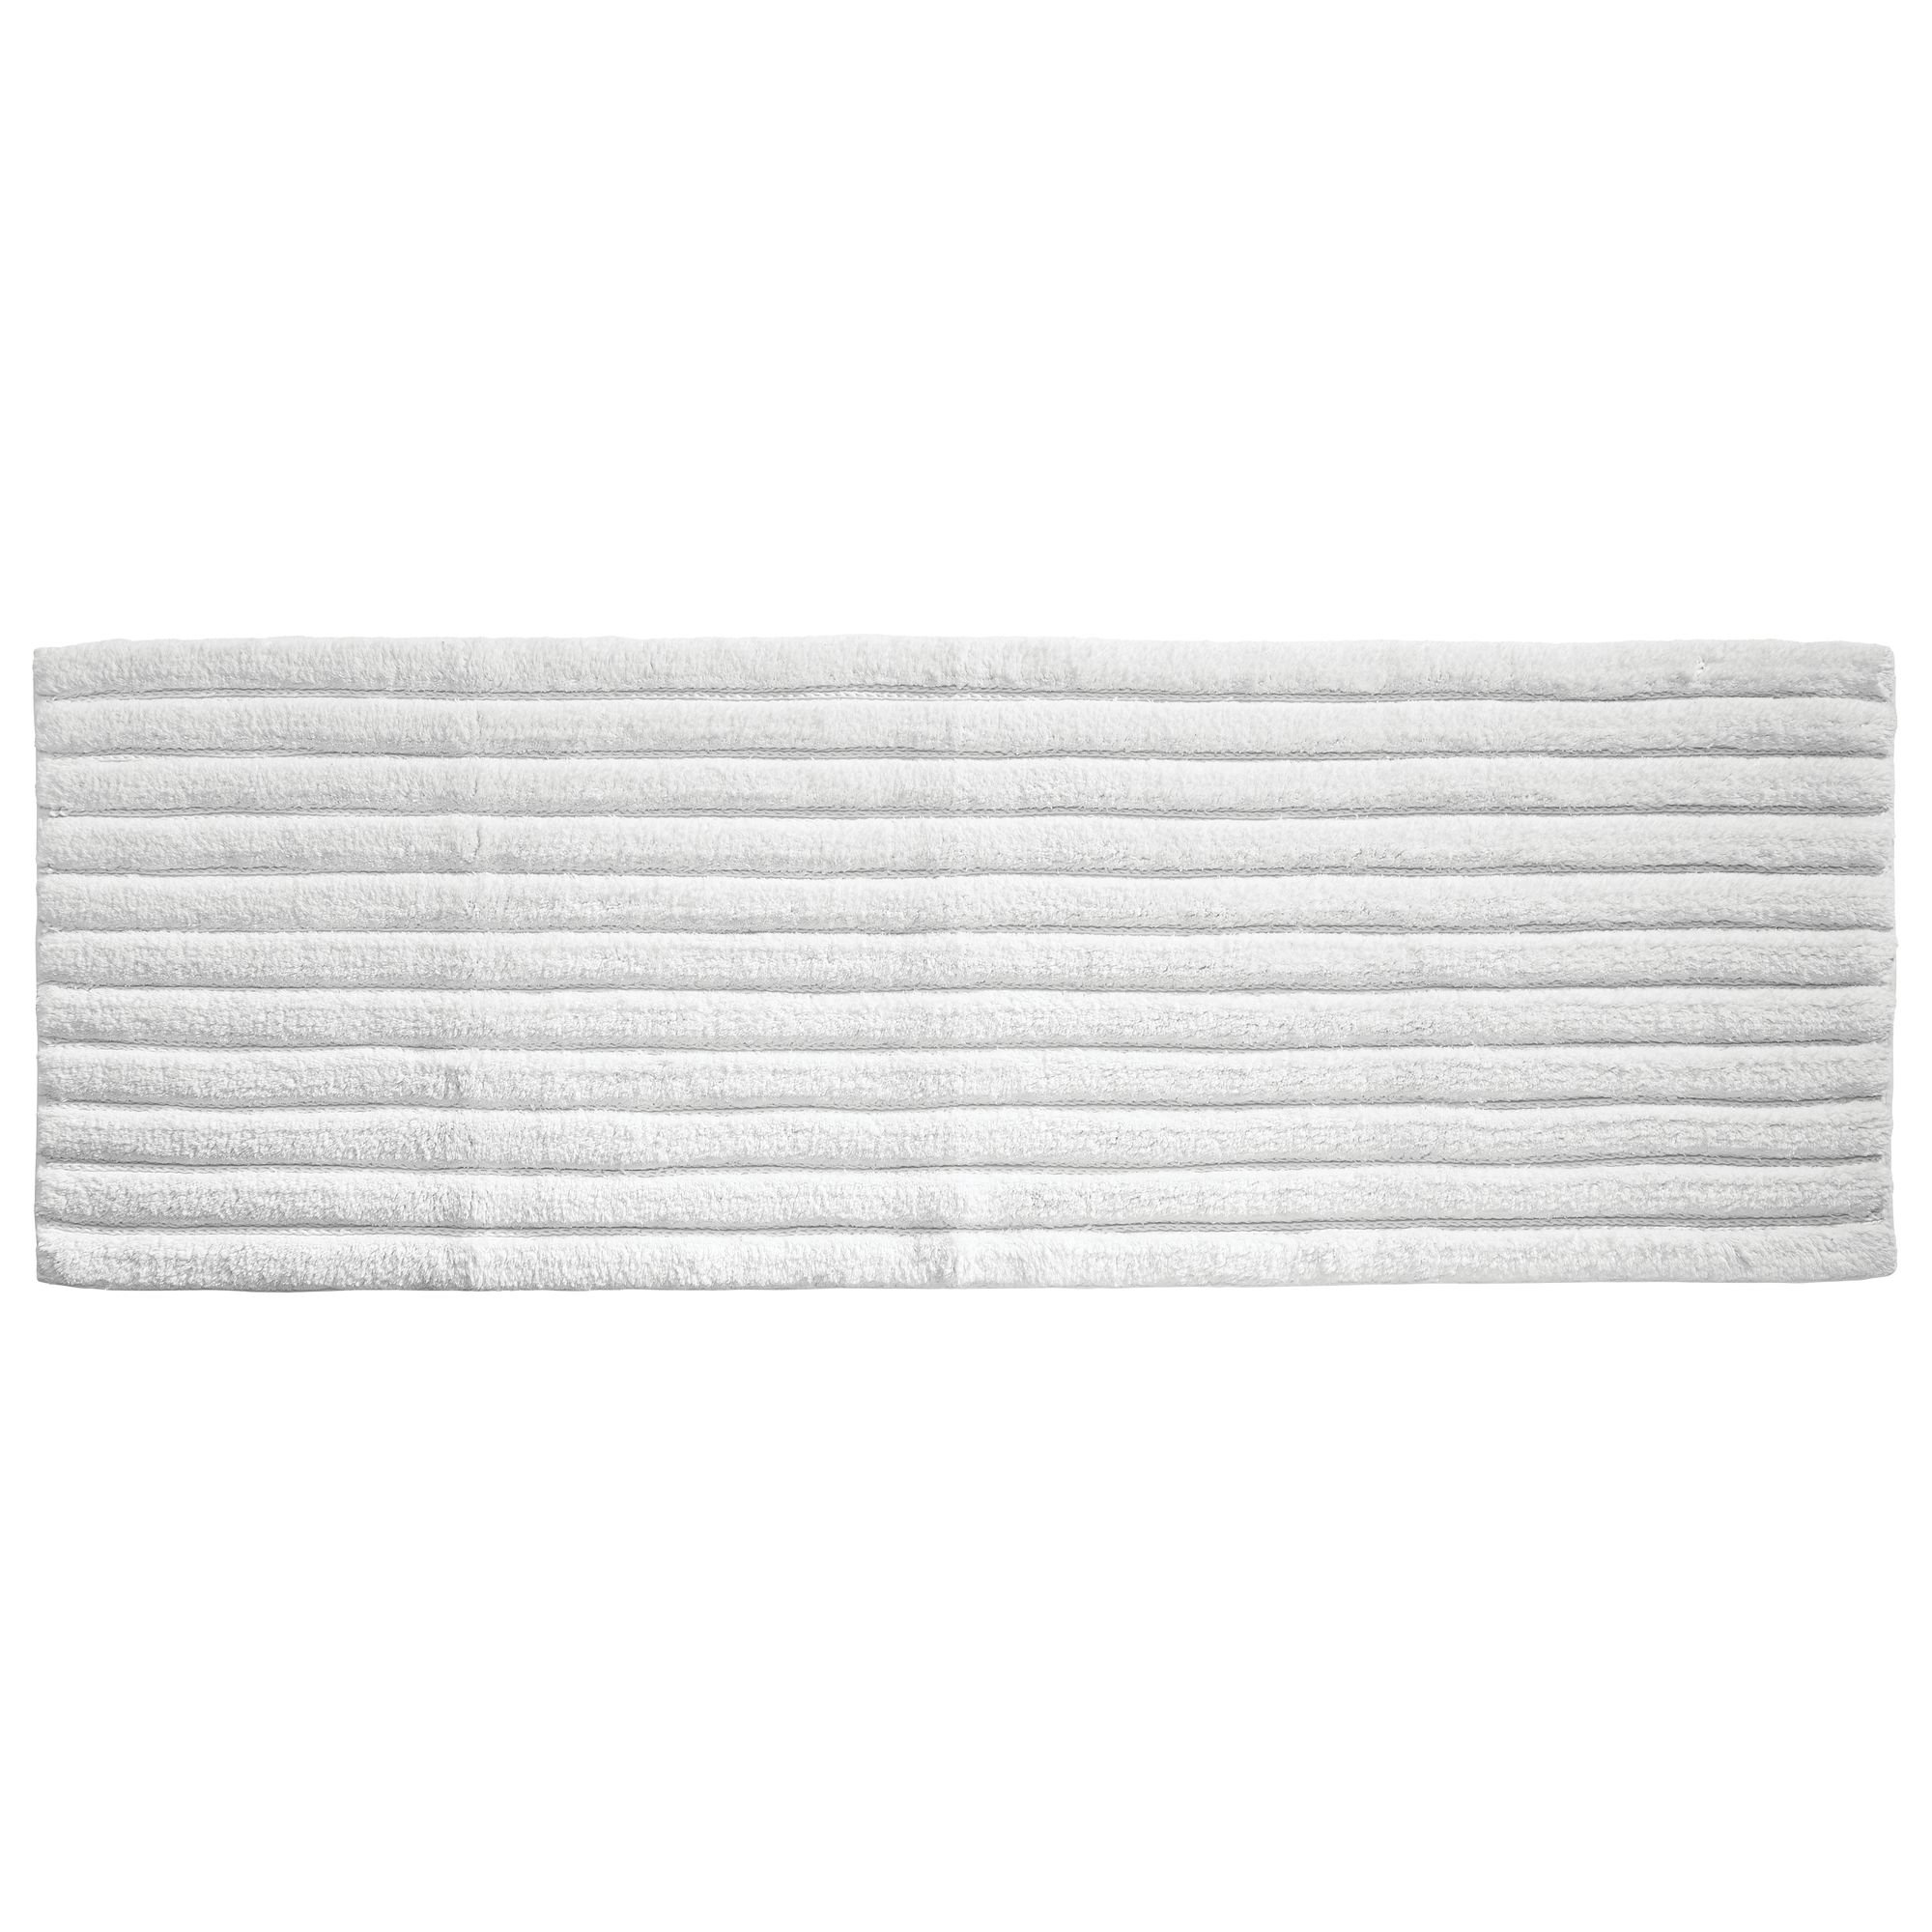 mDesign Soft 100% Cotton Luxury Hotel-Style Rectangular Spa Mat Rug, Plush Water Absorbent, Ribbed Design - for Bathroom Vanity, Bathtub/Shower, Machine Washable - Long Runner, 60'' x 21'', White